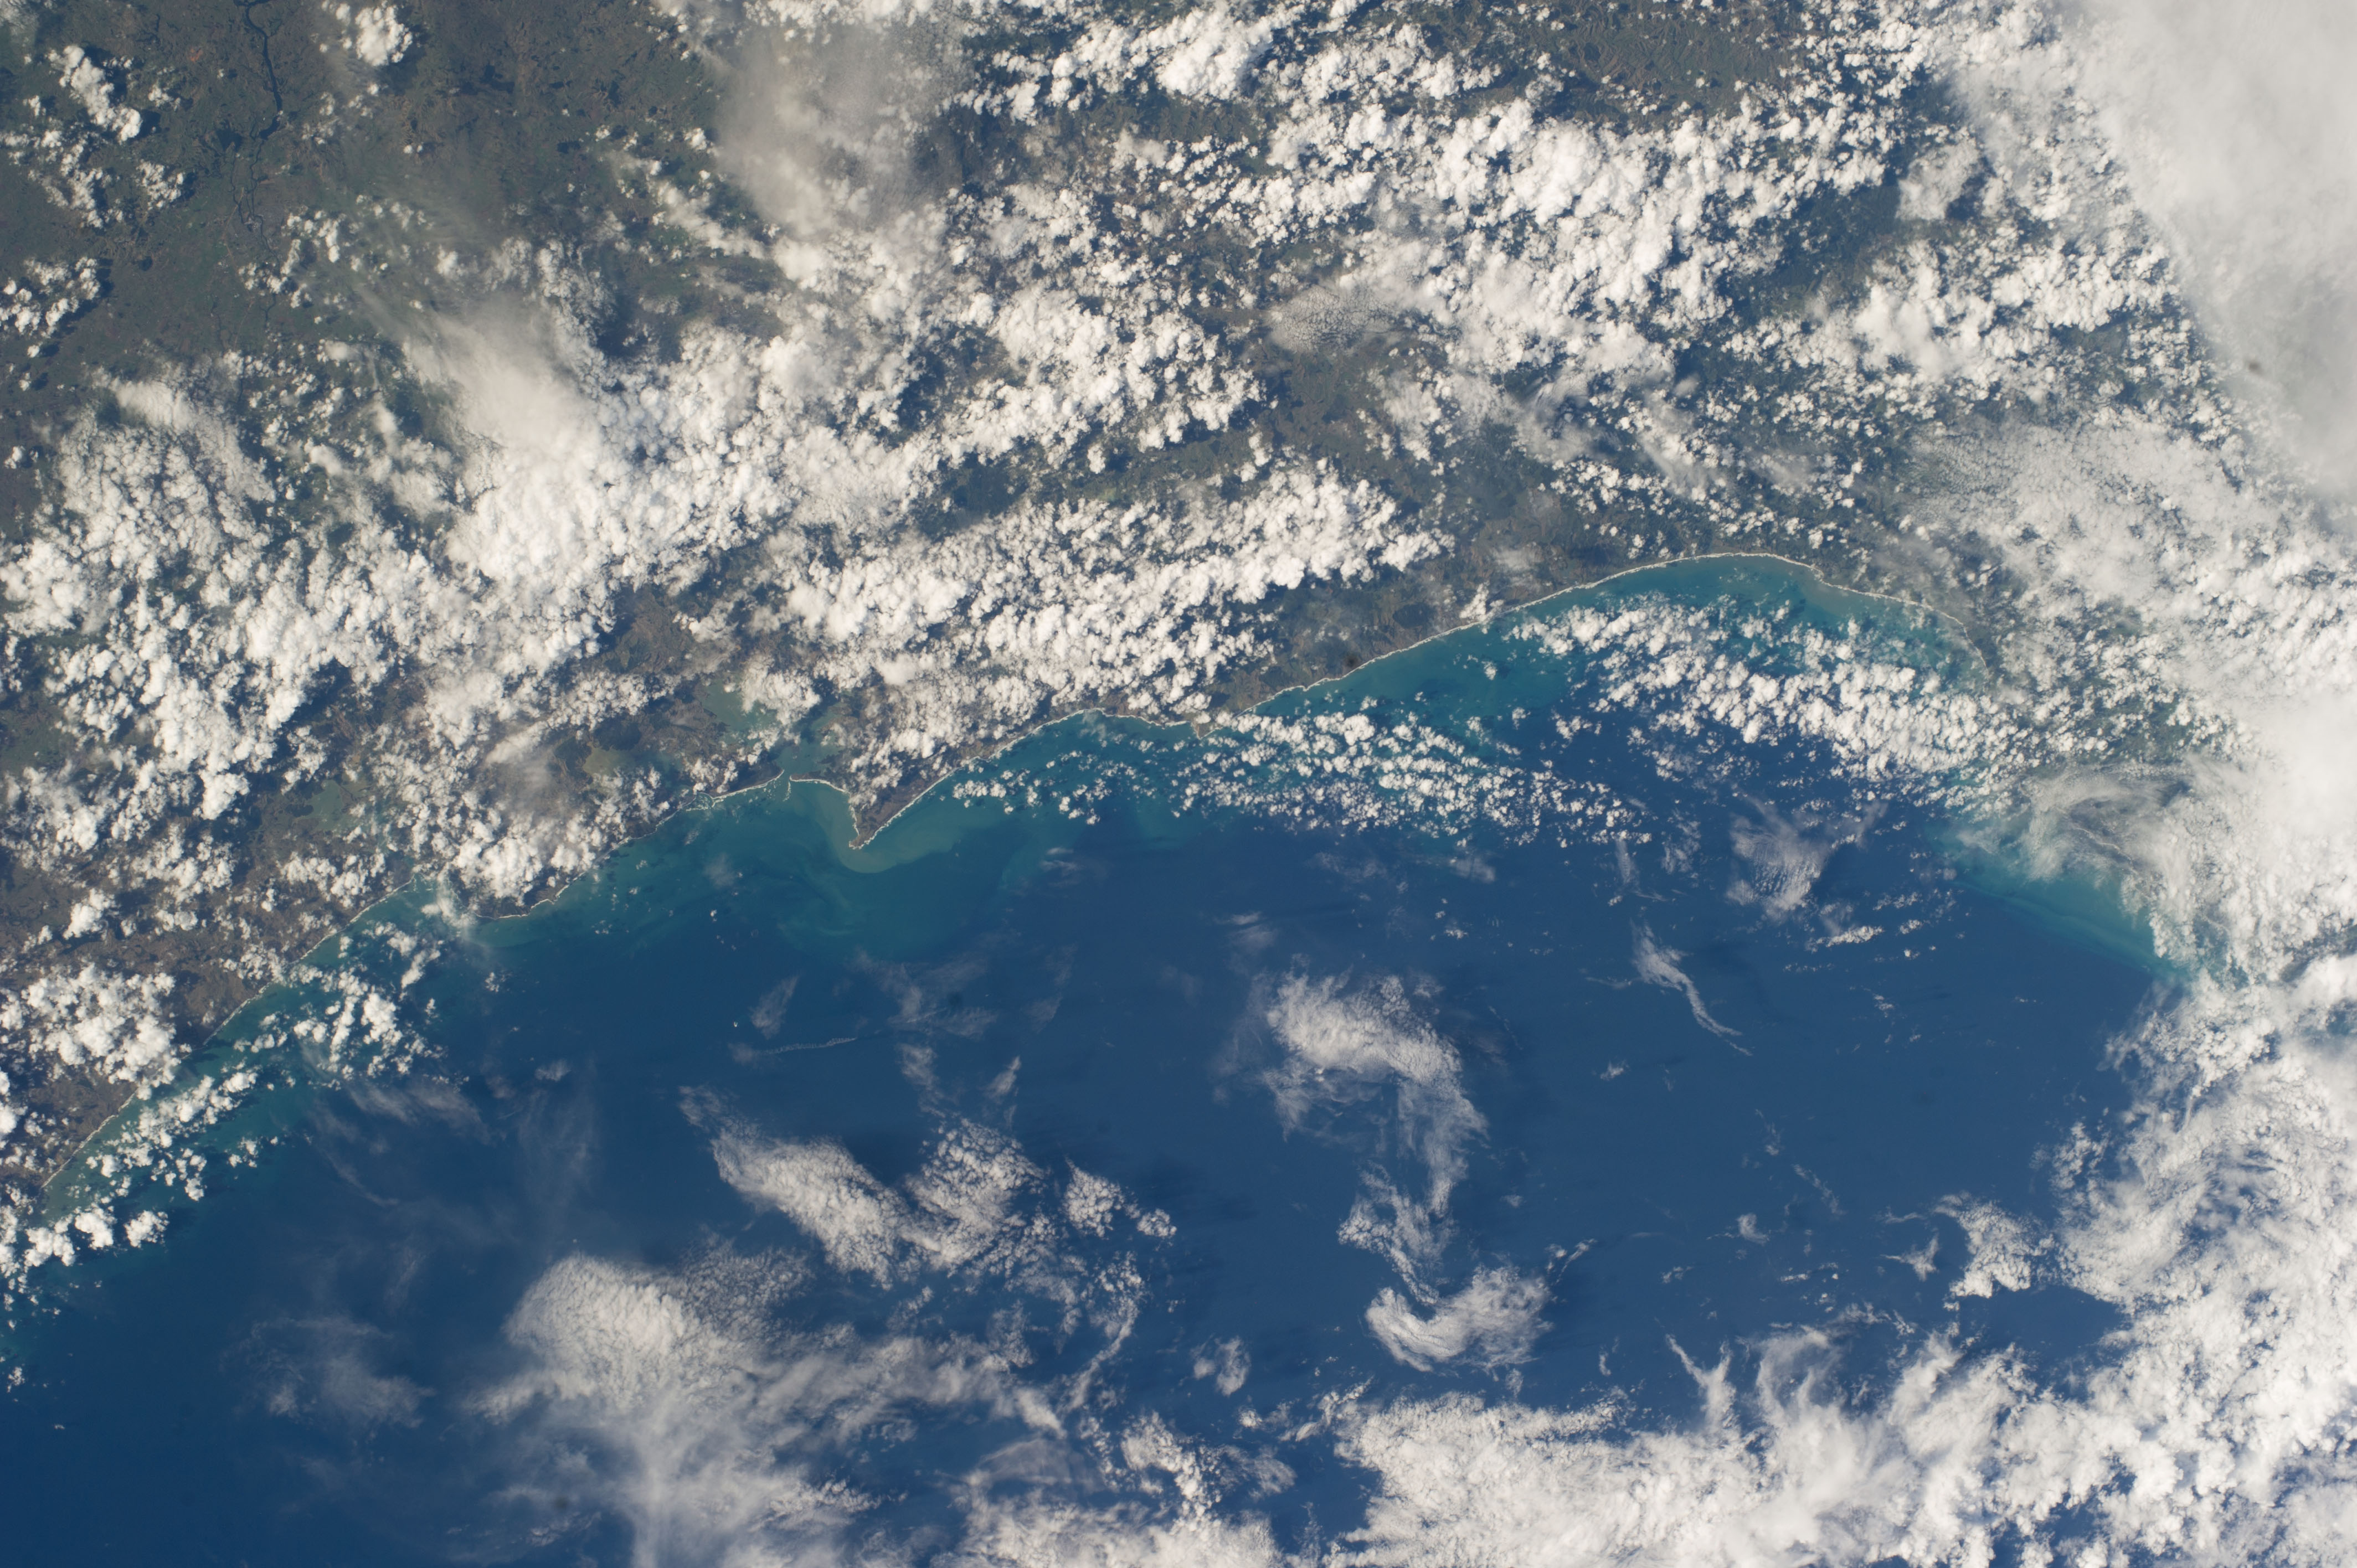 ISS039-E-012864